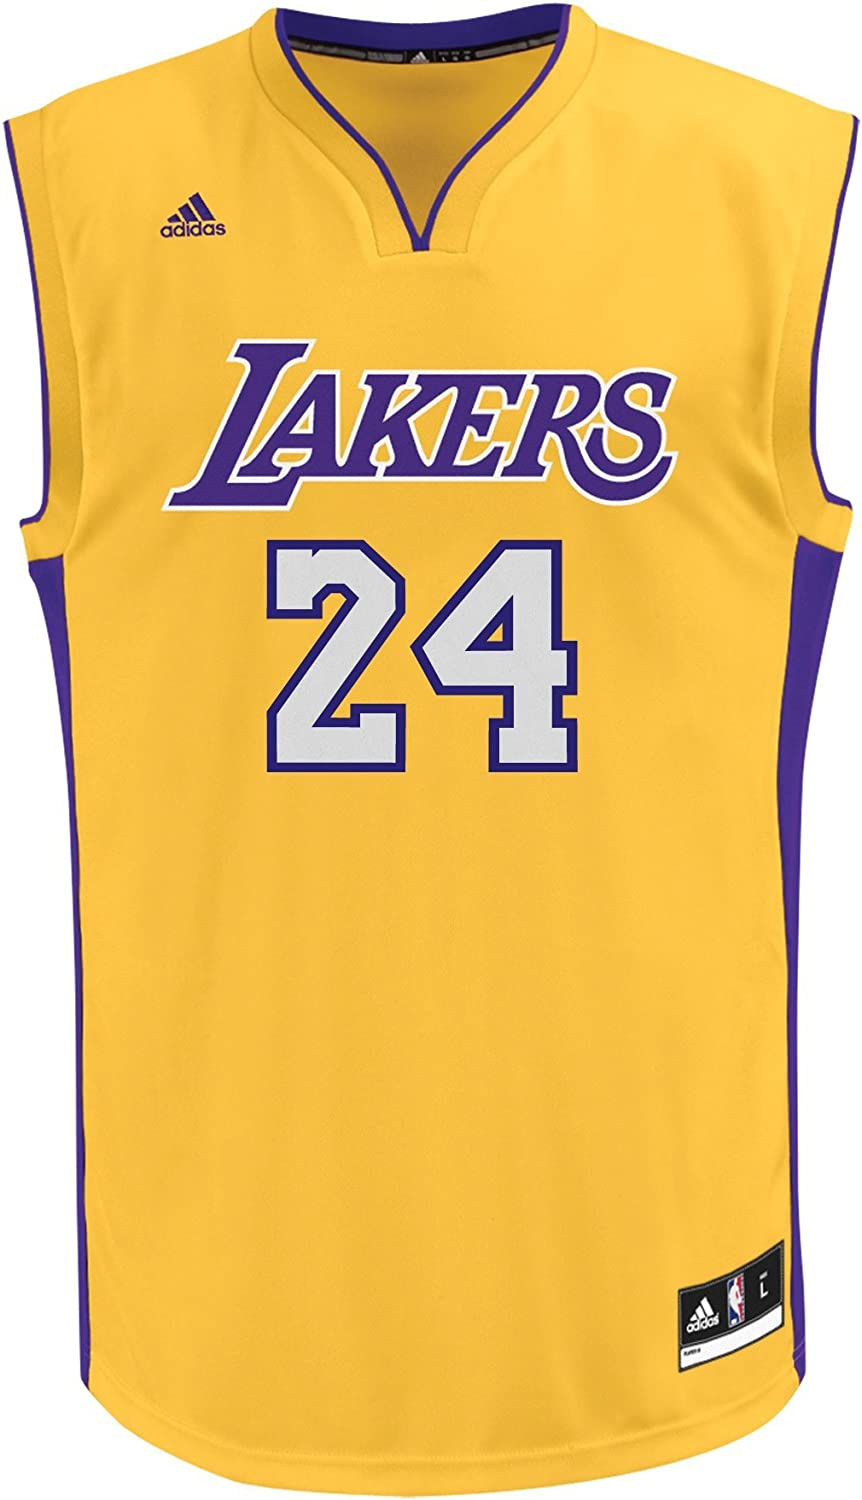 Lakers Jersey Kids Clearance Sale, UP TO 56% OFF